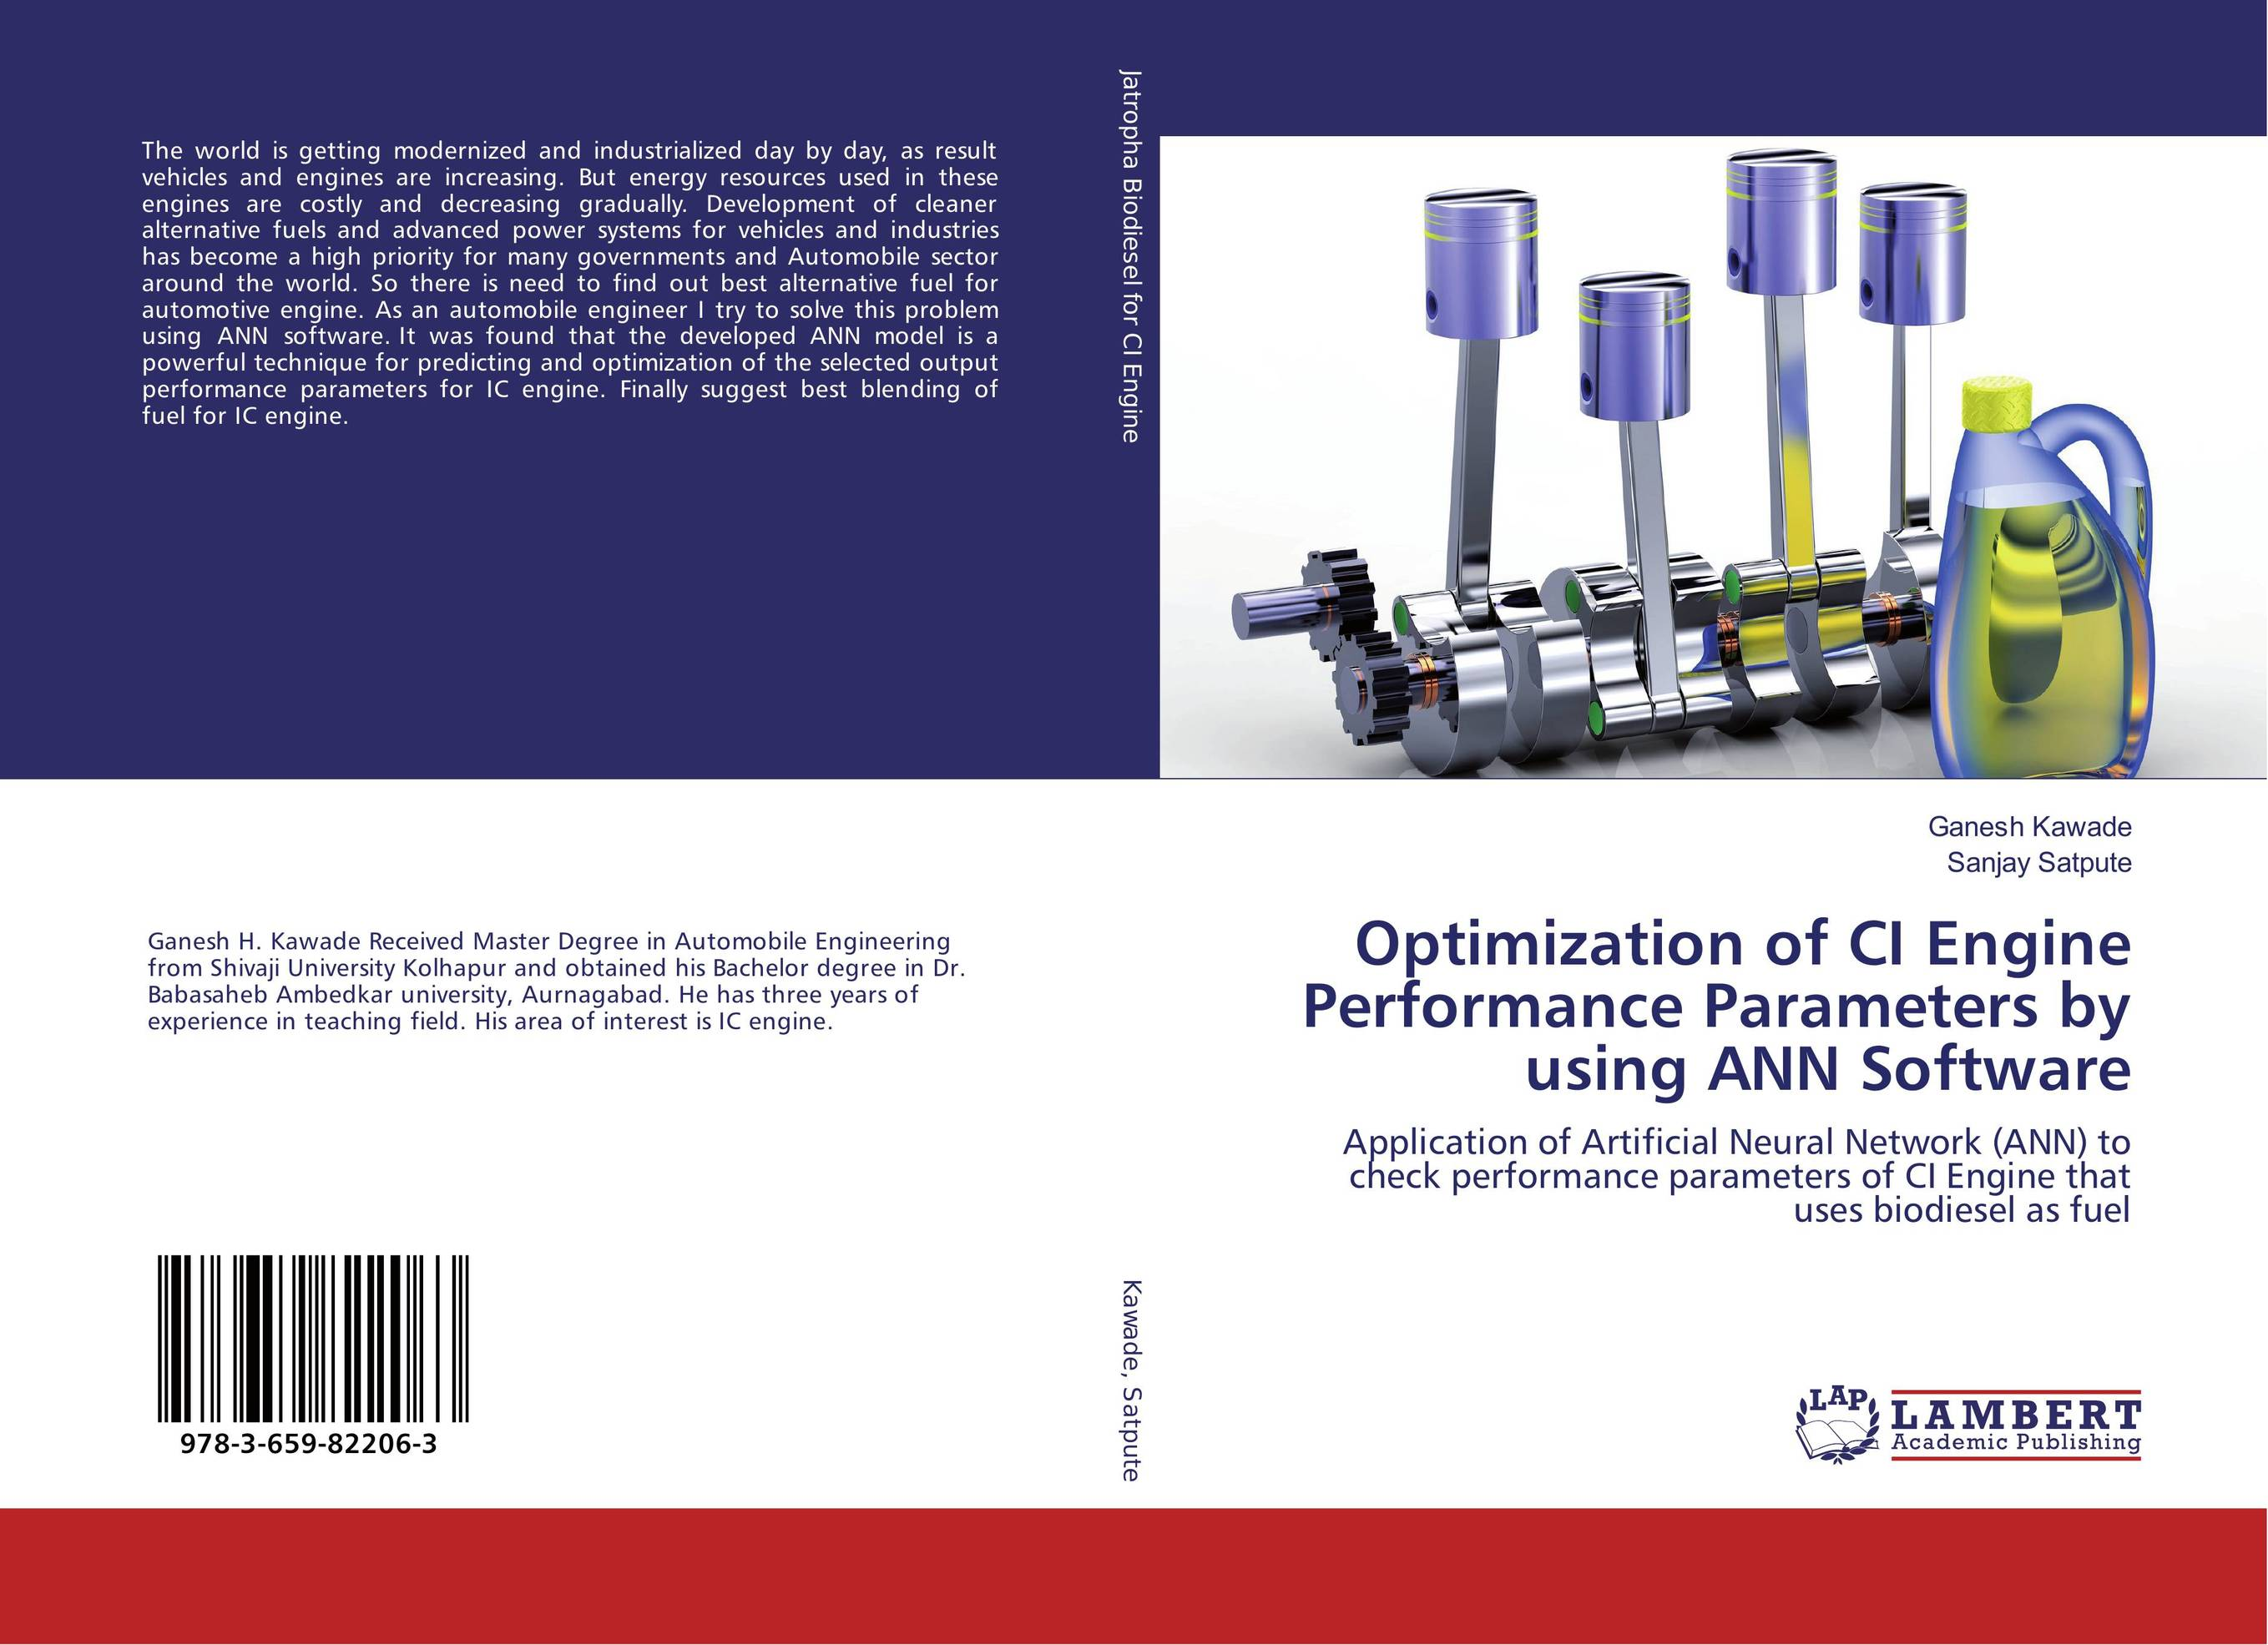 Optimization of CI Engine Performance Parameters by using ANN Software